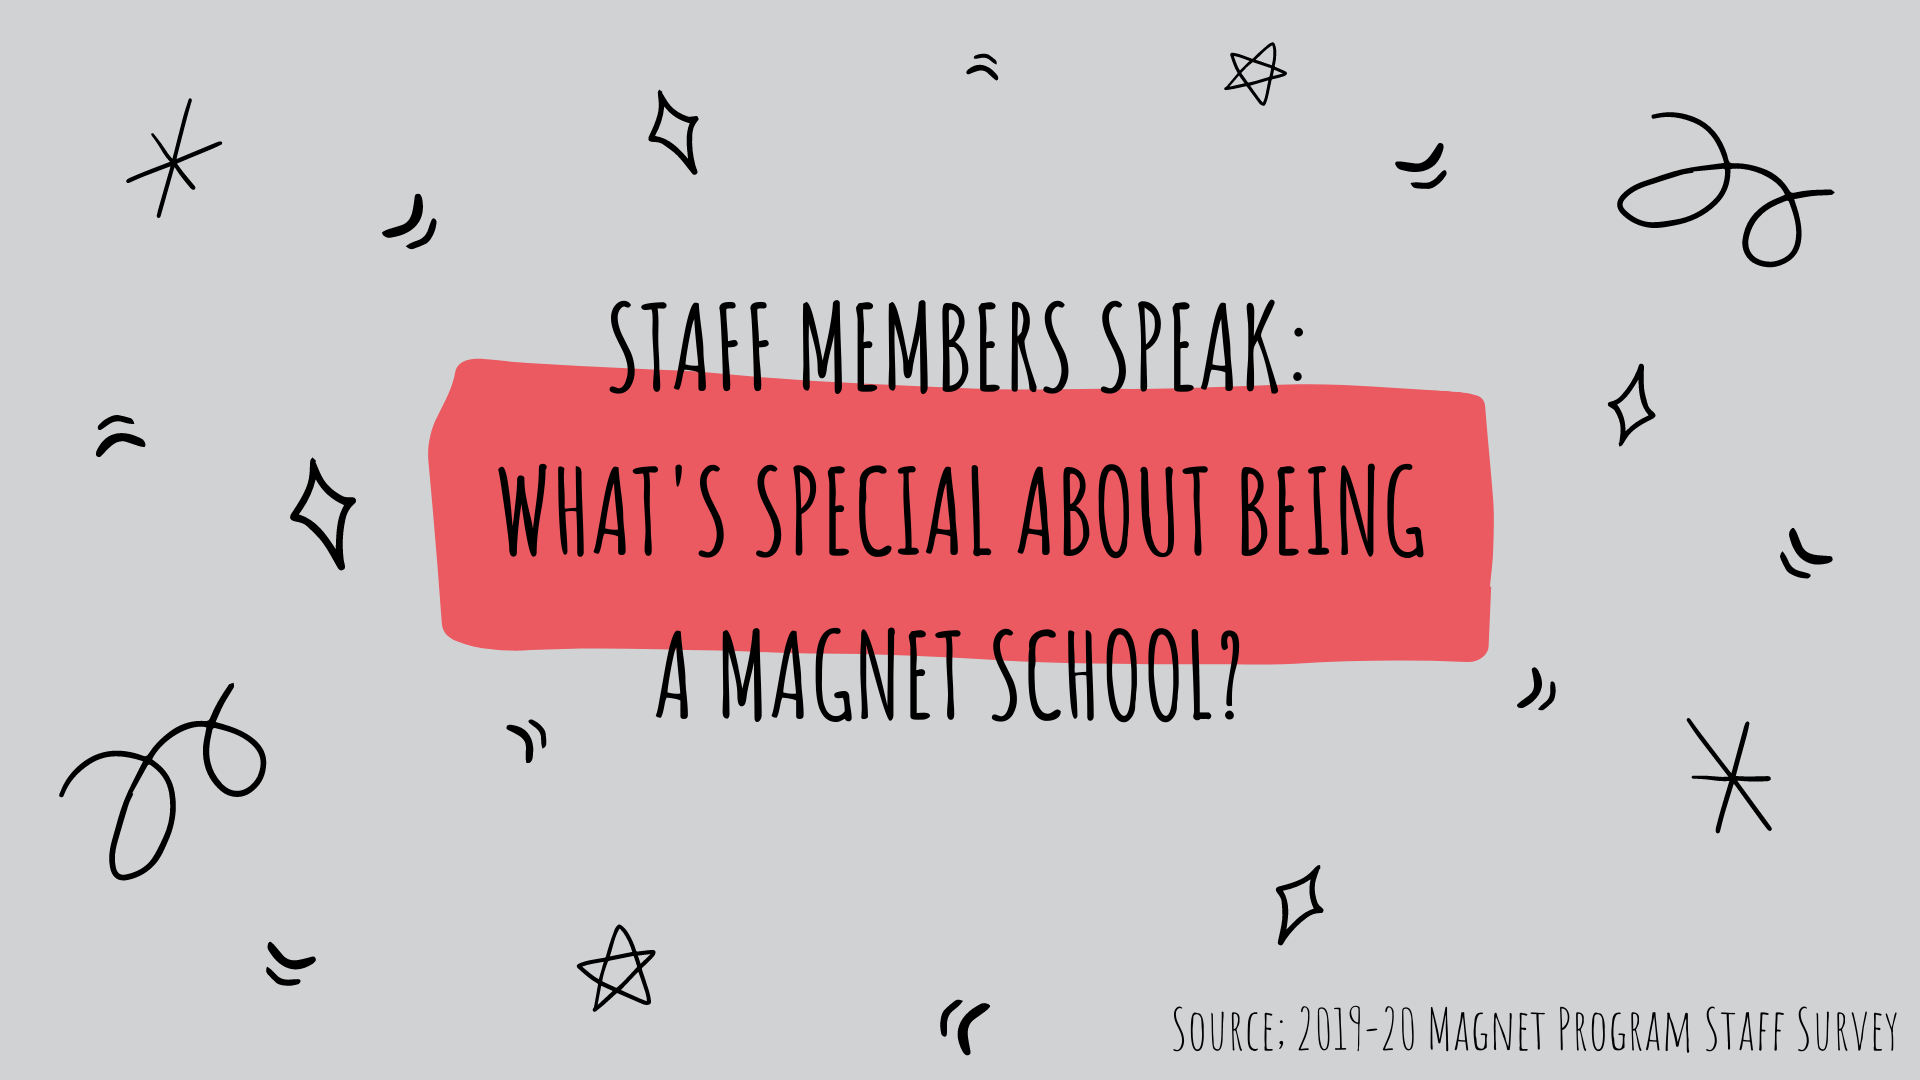 Staff Members Speak: What's special about being a magnet school?